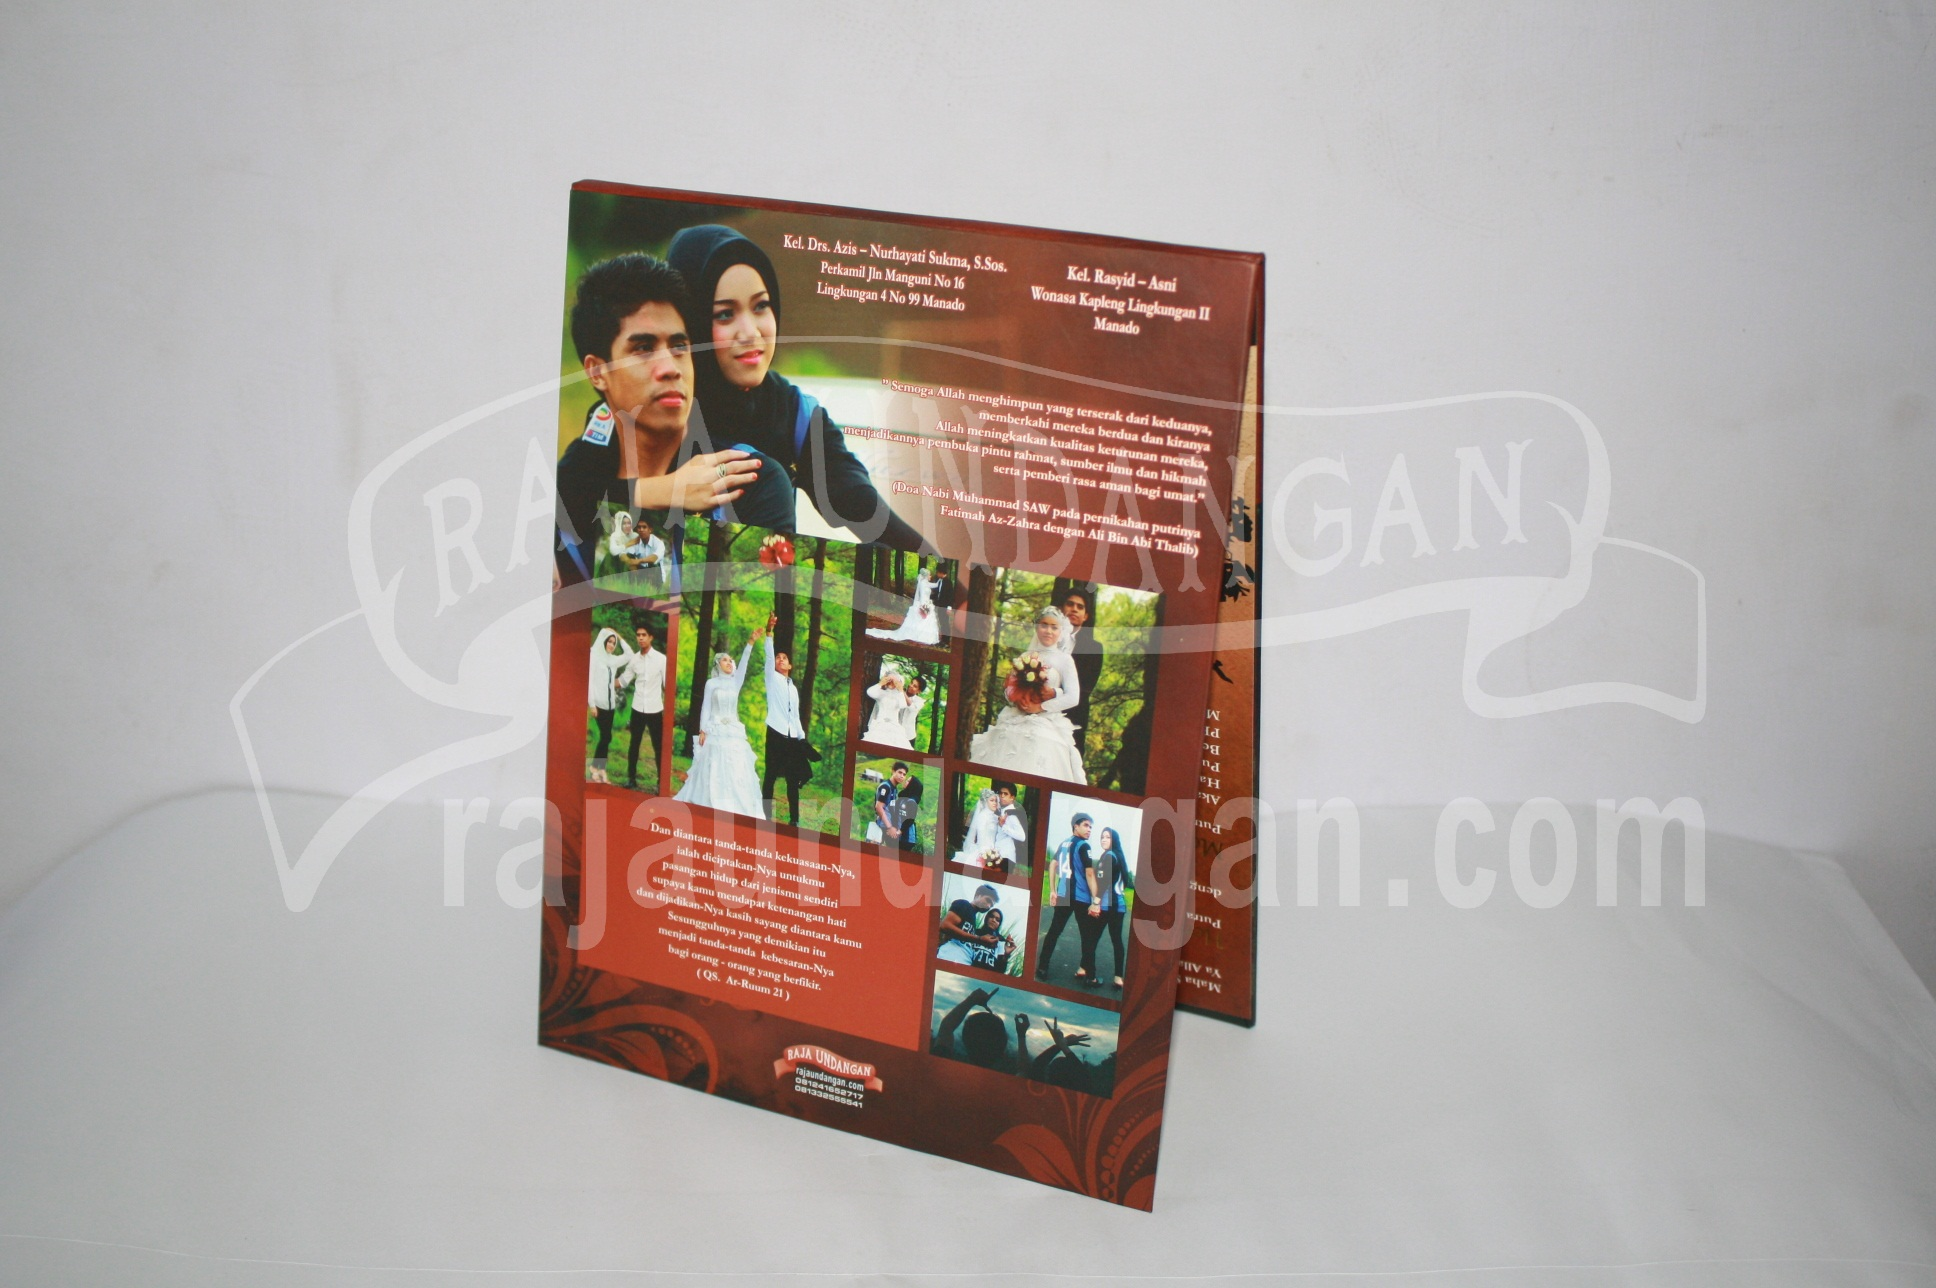 Undangan Pernikahan Hardcover Pop Up Heri dan Mona EDC 43 13 - Percetakan Wedding Invitations Eksklusif dan Elegan di Gunung Anyar